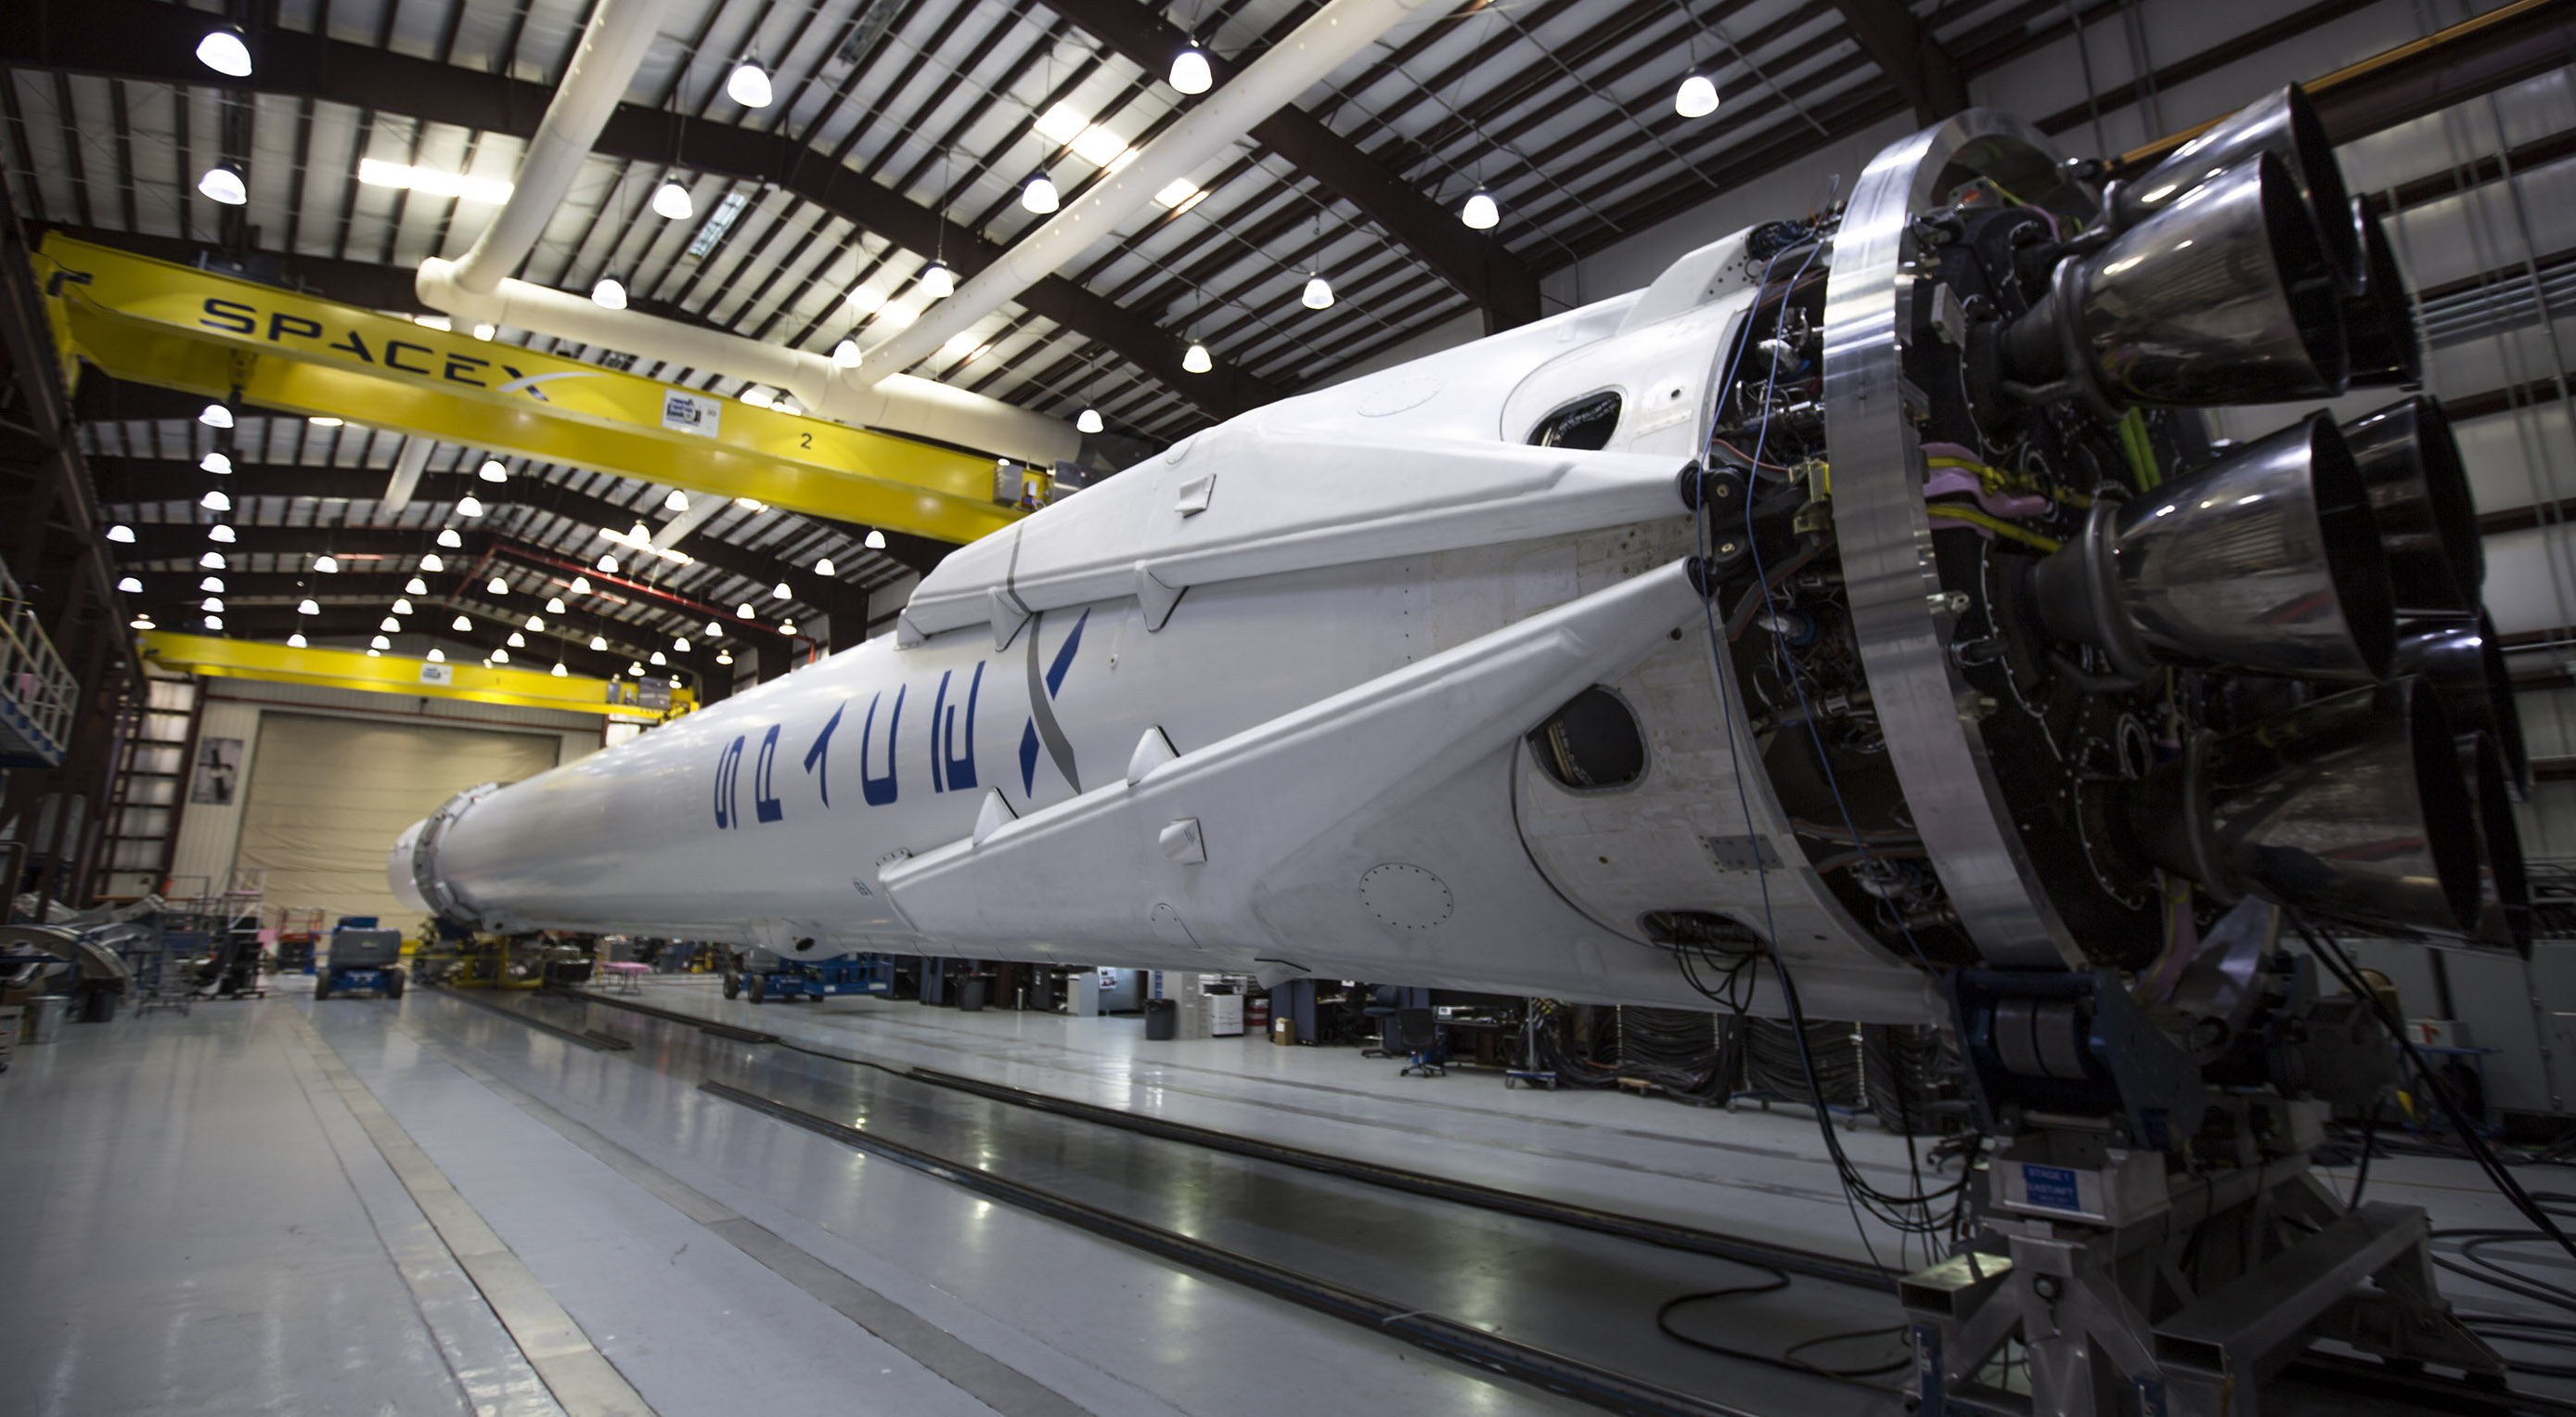 Updated] Insider reveals possible SpaceX IPO, Tesla